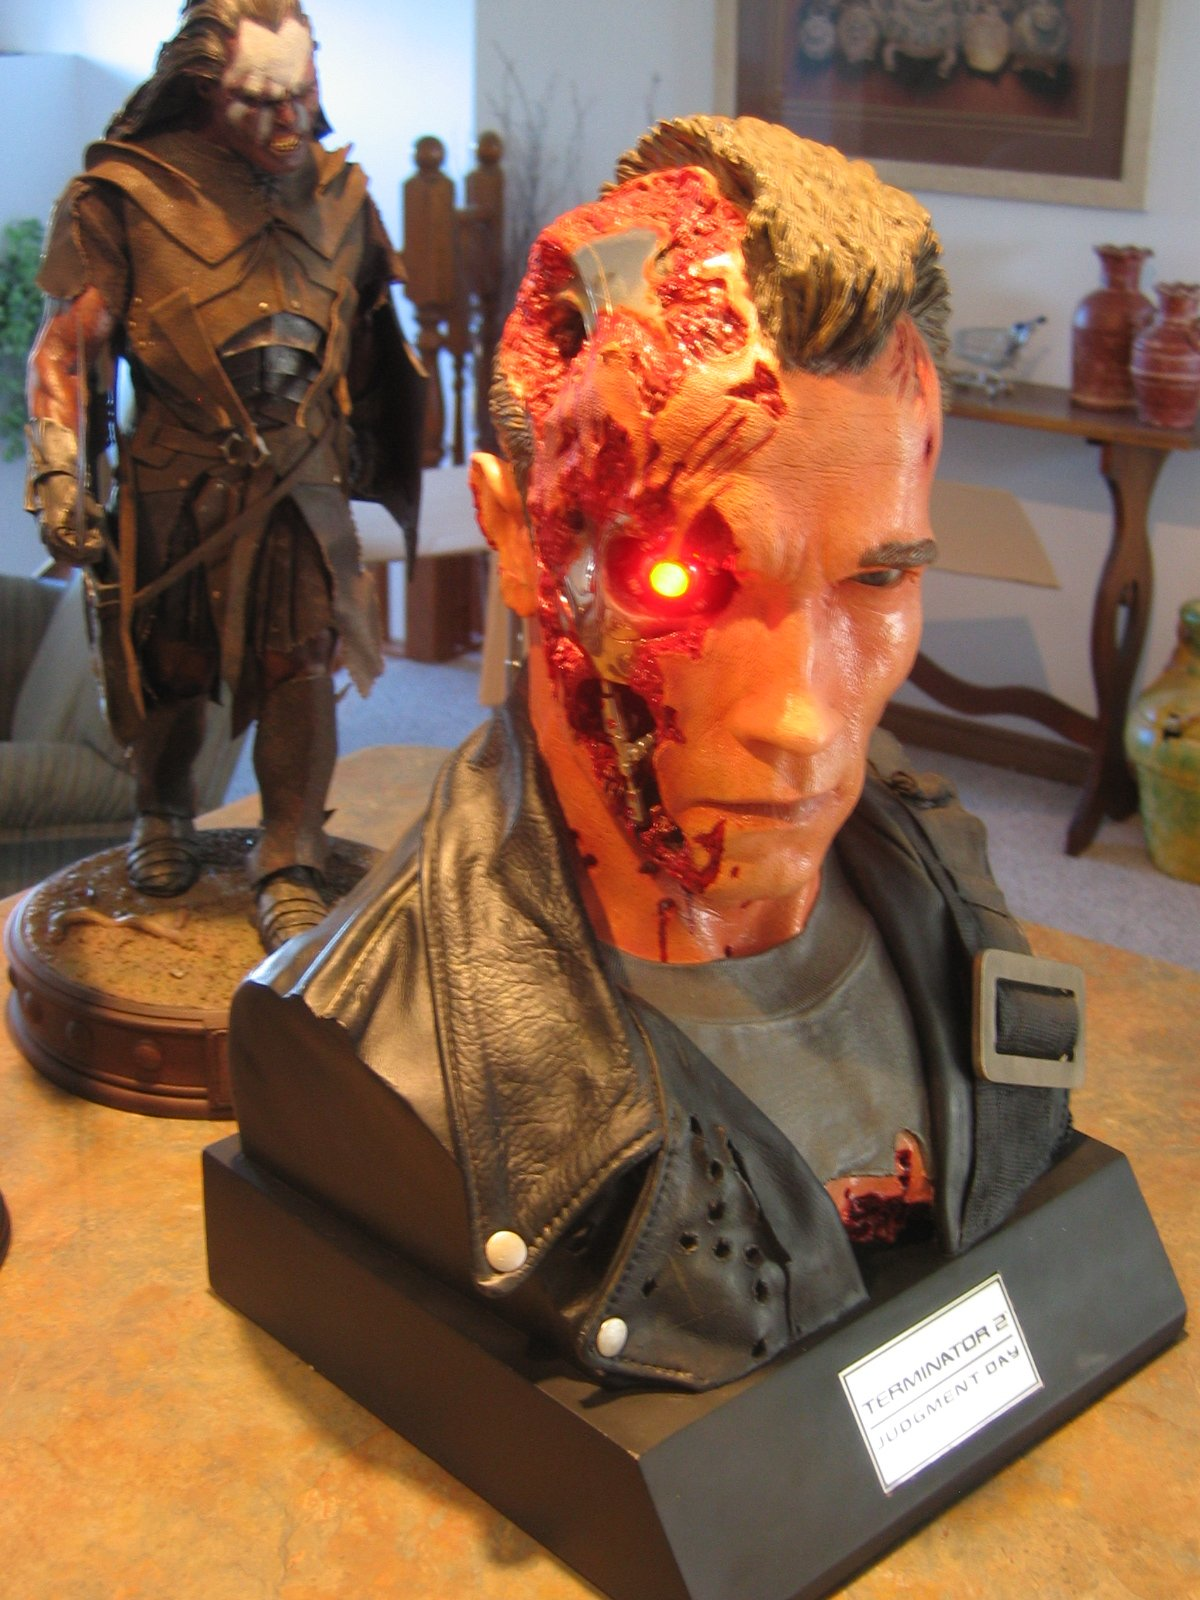 Lifesize bust of T2 Arnold battle damaged. Lurtz premium format in the background.